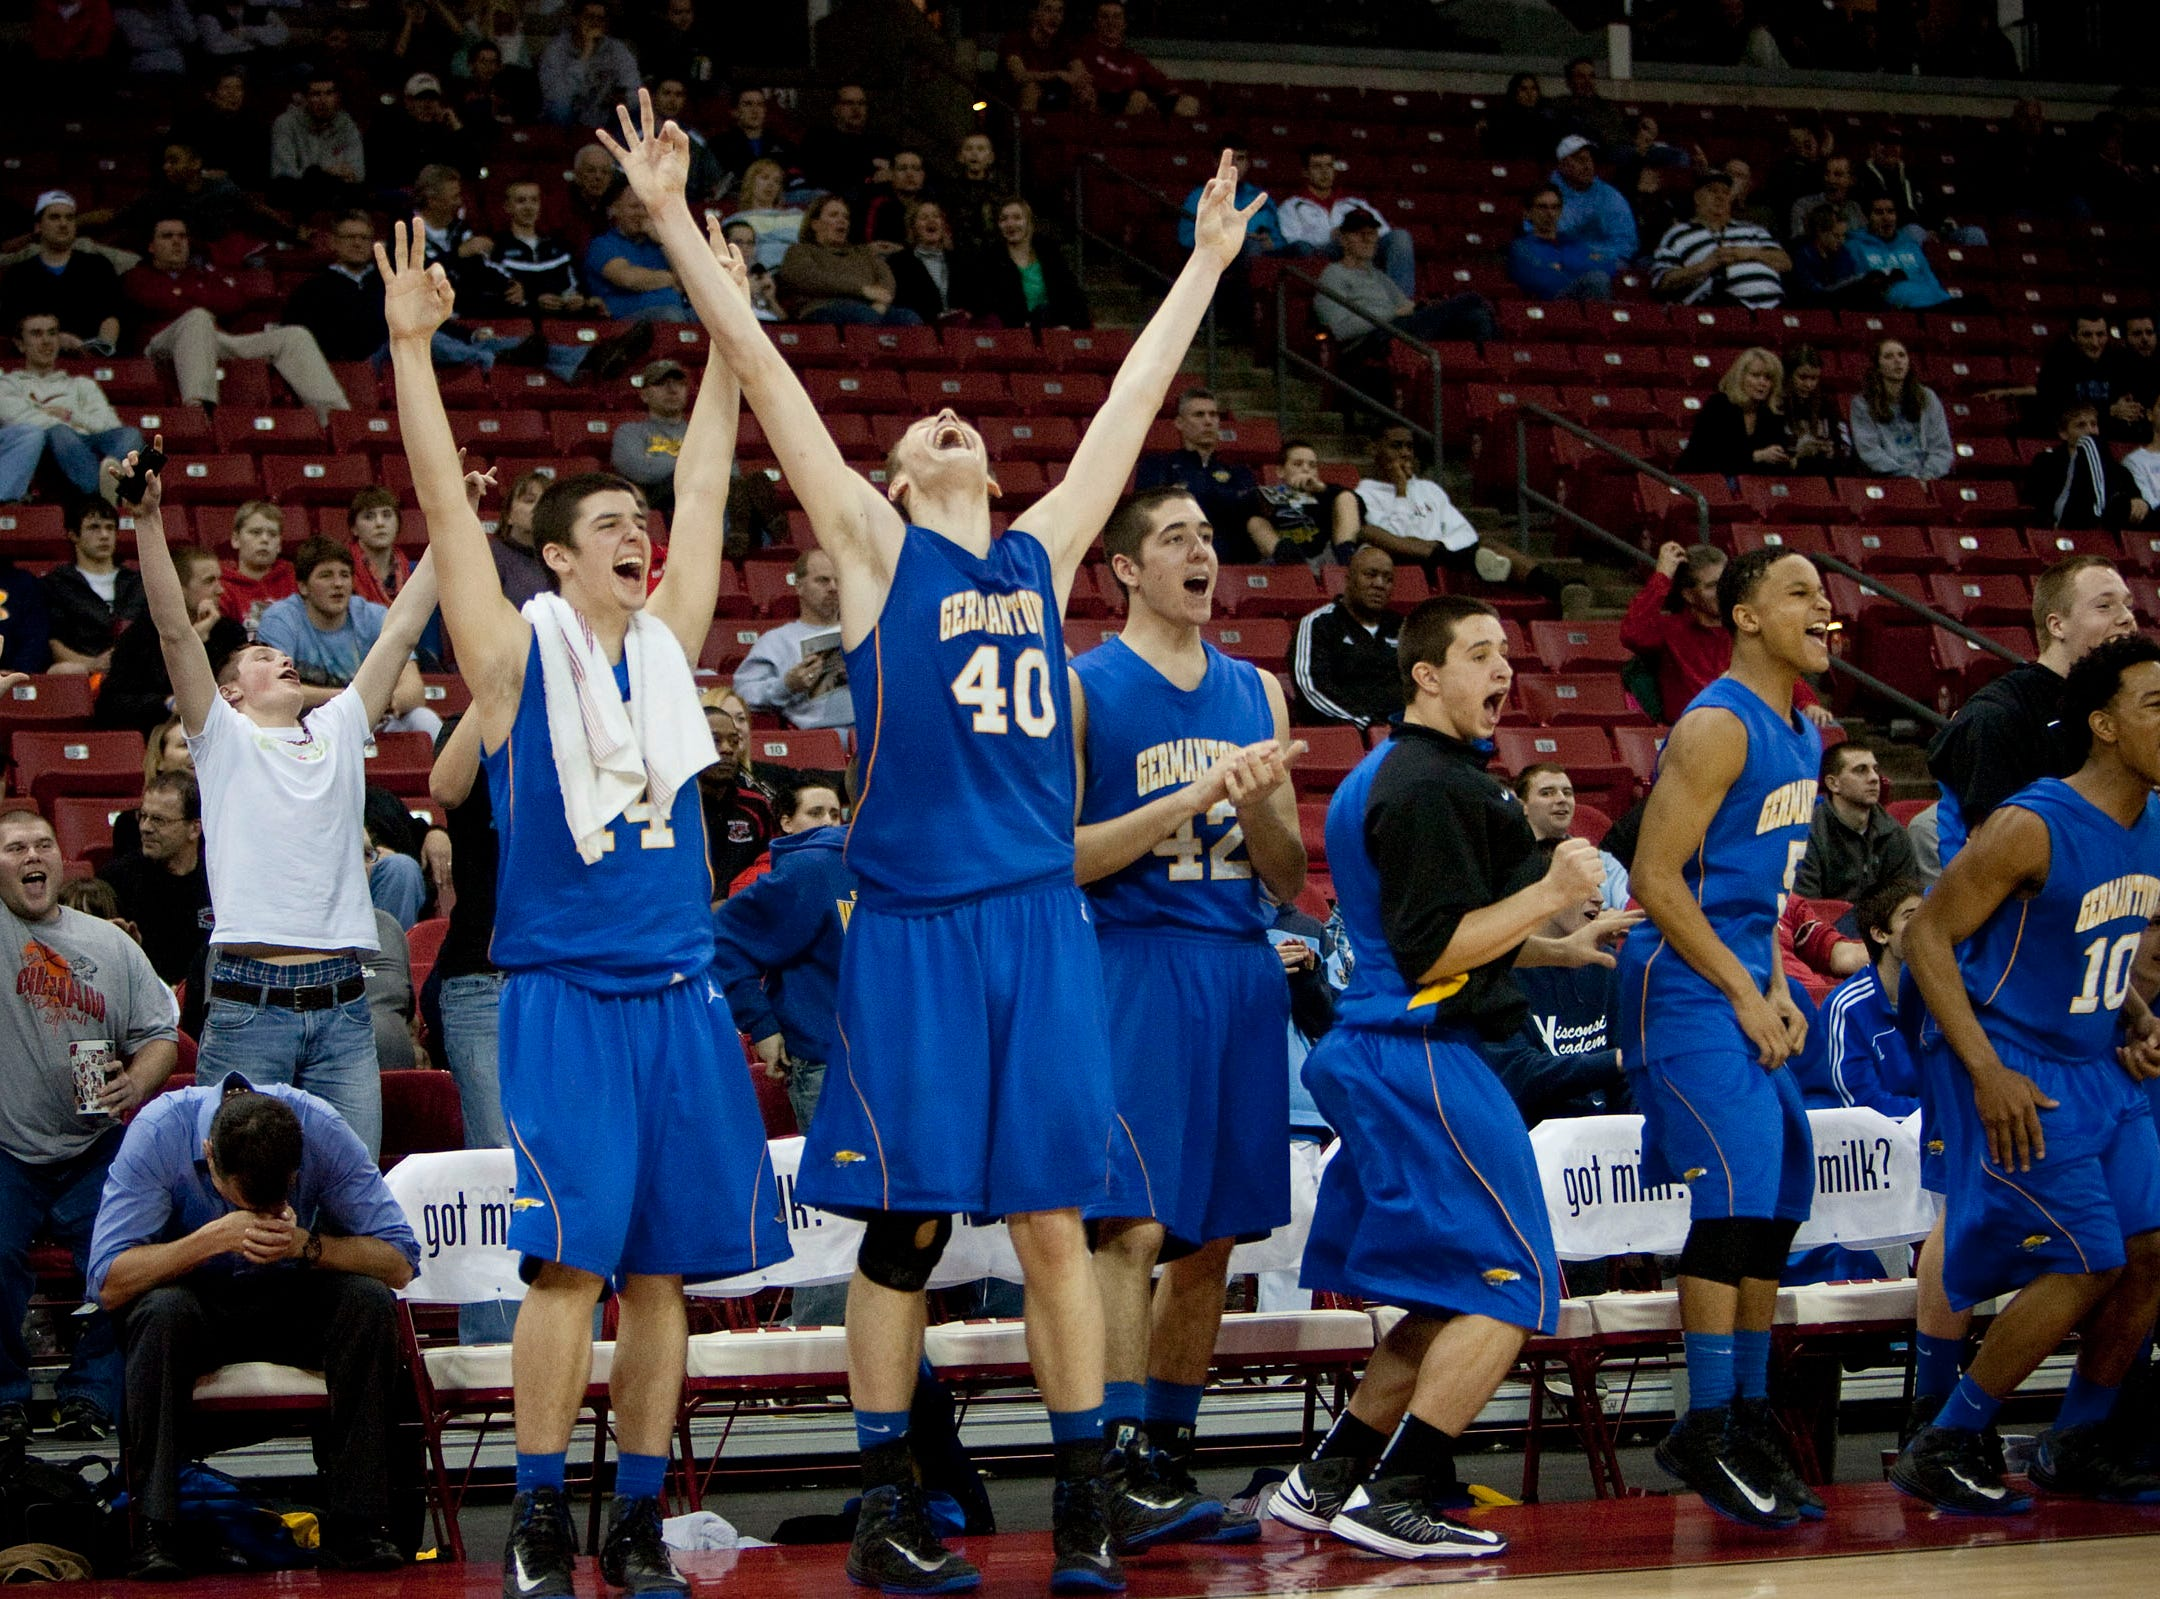 The Germantown bench including Luke Fischer (40) react as Germantown scores over Mukwonago in the closing seconds of the teams W.I.A.A. Division 1 Boys State Basketball Tournament Championship game in the Kohl Center Saturday, March 9, 2013.